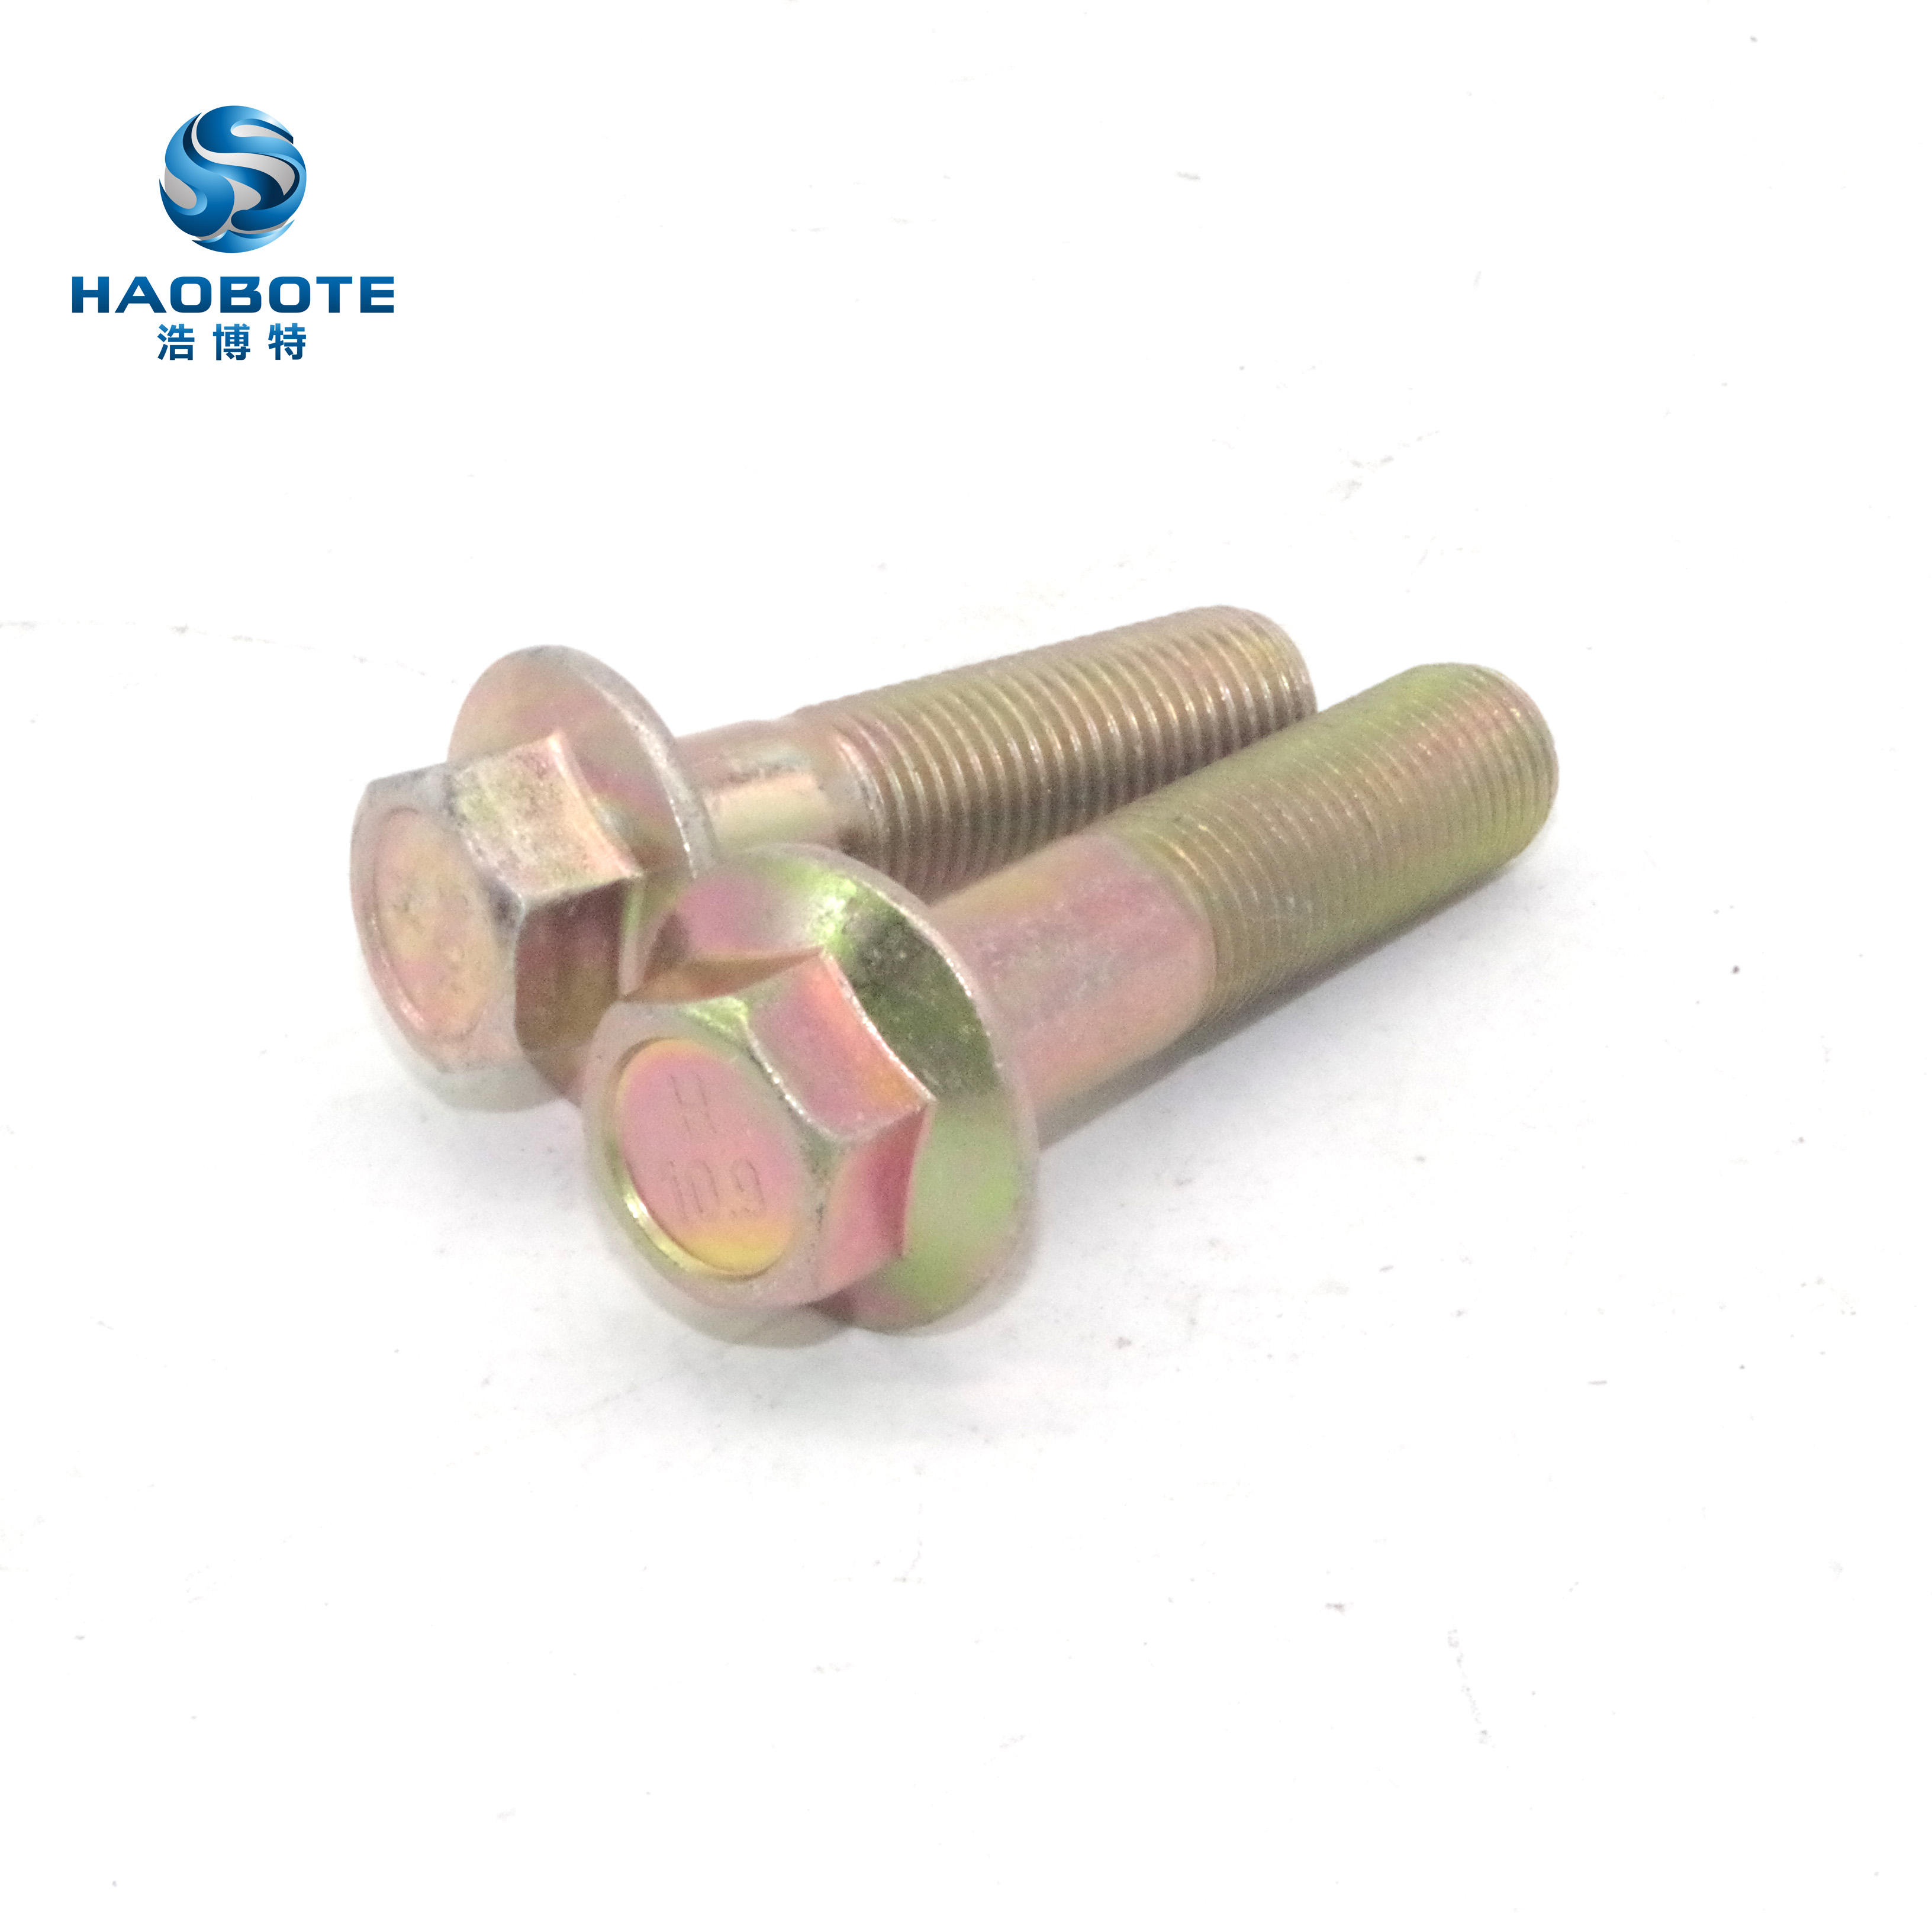 Class 10.9 Plated Yellow Zinc for Automobile BelMetric JIS Hex Head Flange Bolt 10mm Wrench Motorcycle and Mechanical Applications